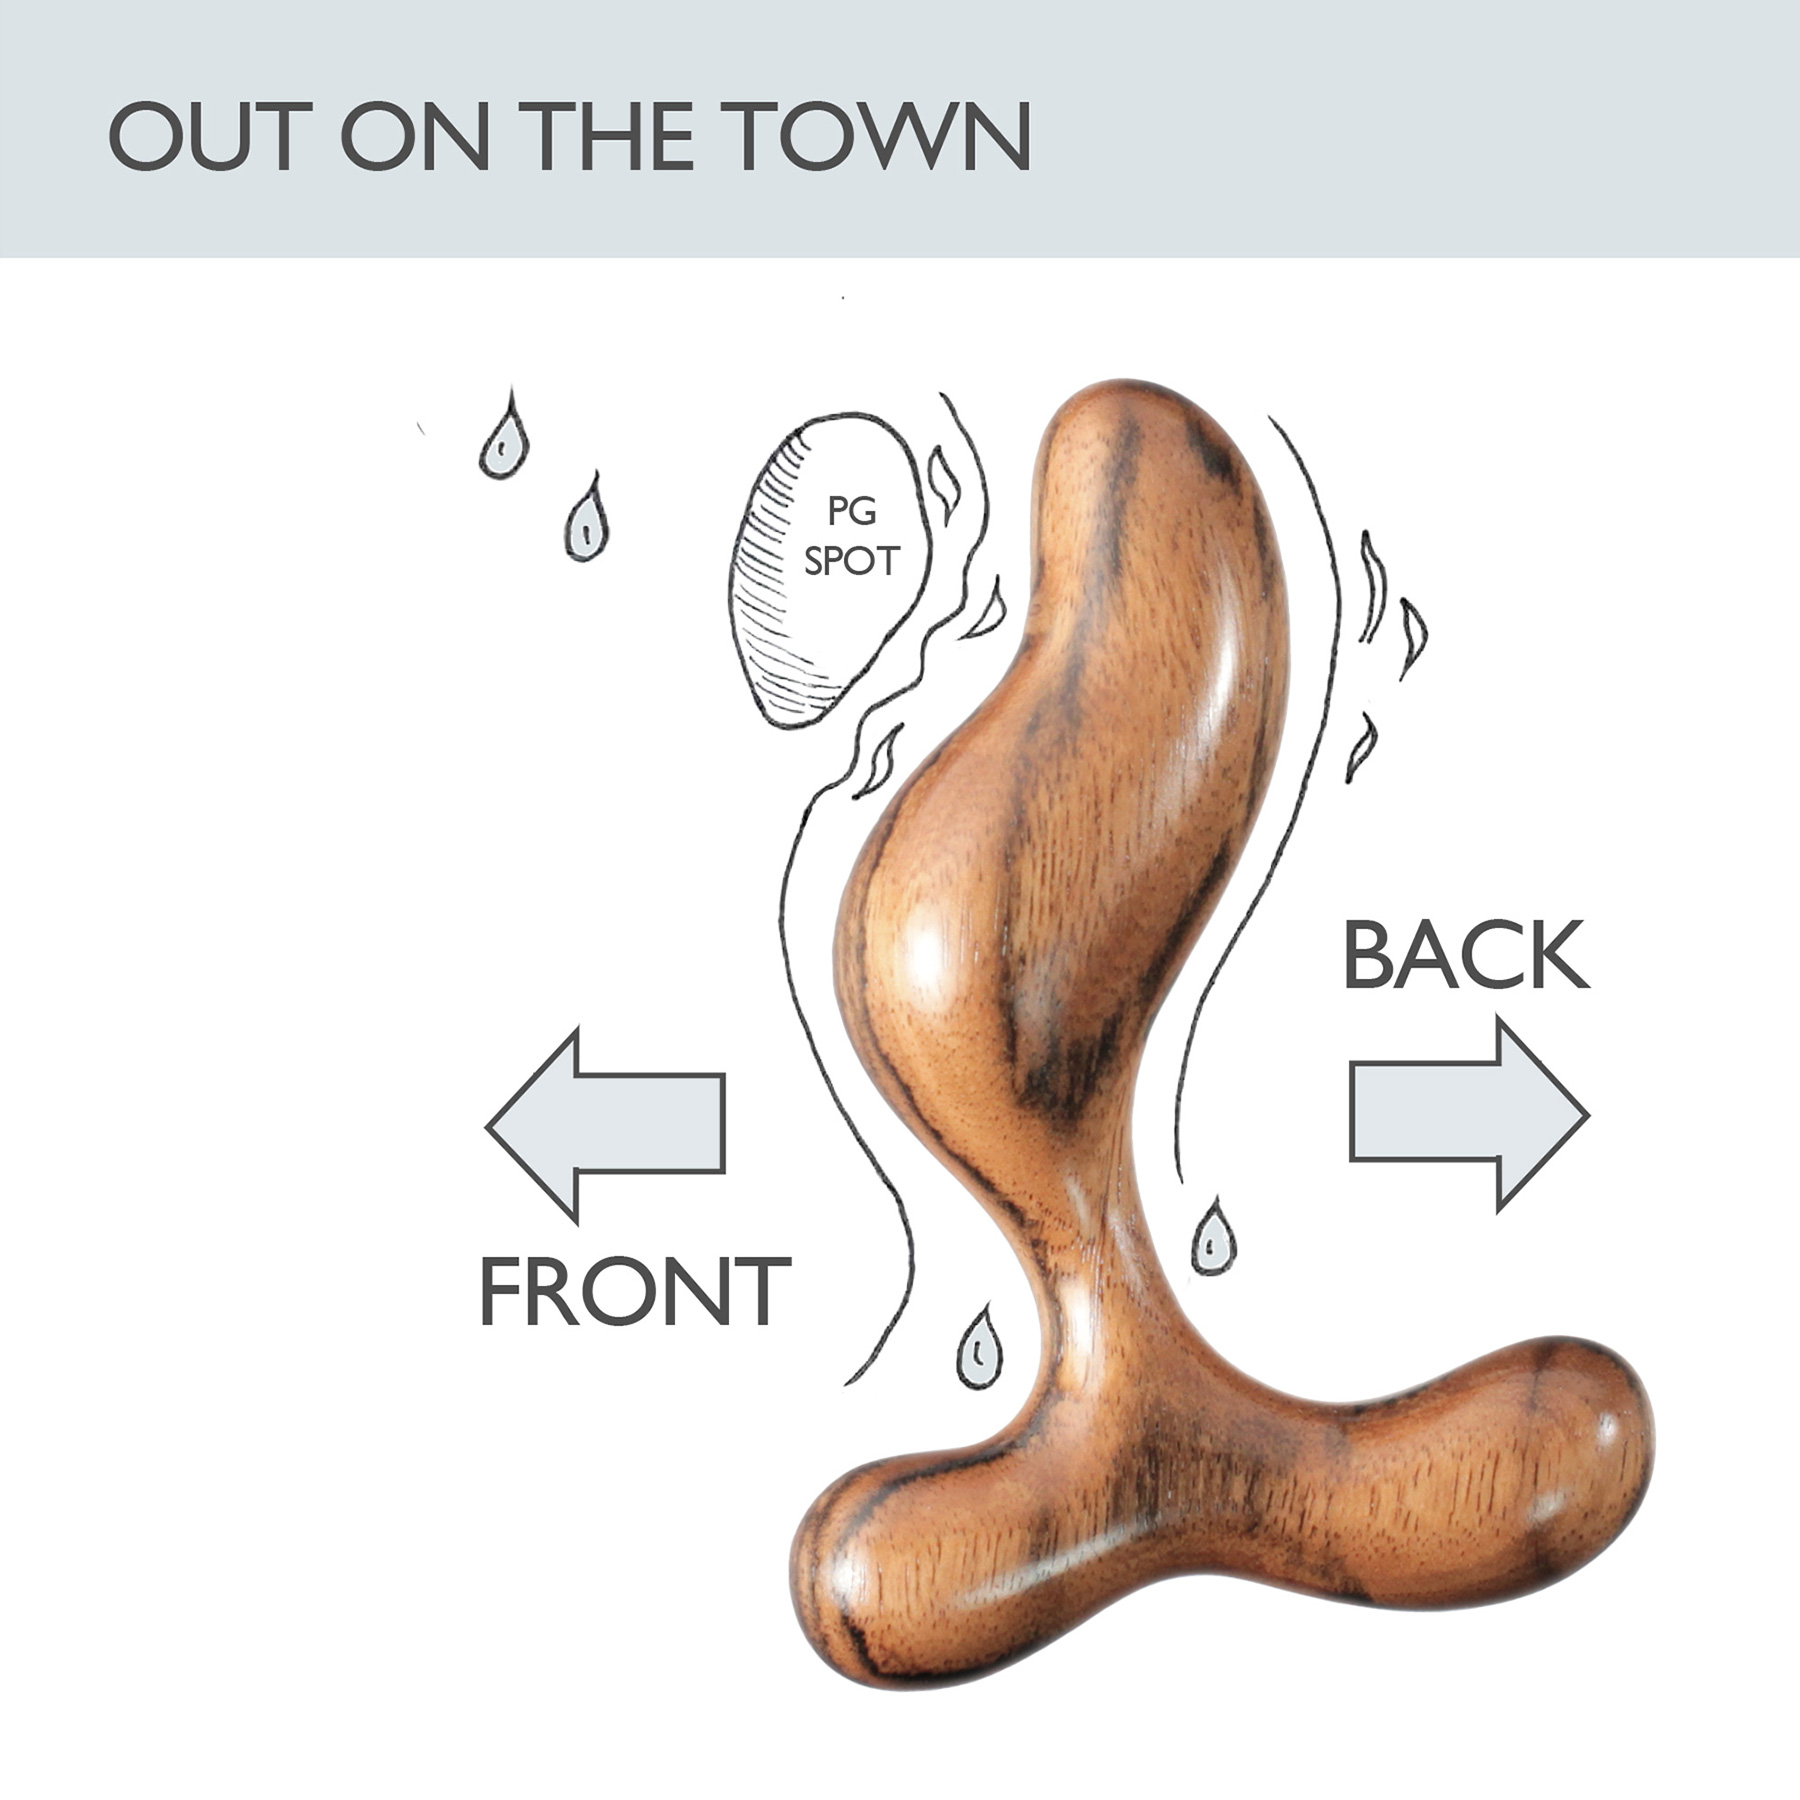 NobEssence Romp 2.0 Sculptured Hardwood Prostate Massager - Out On The Town